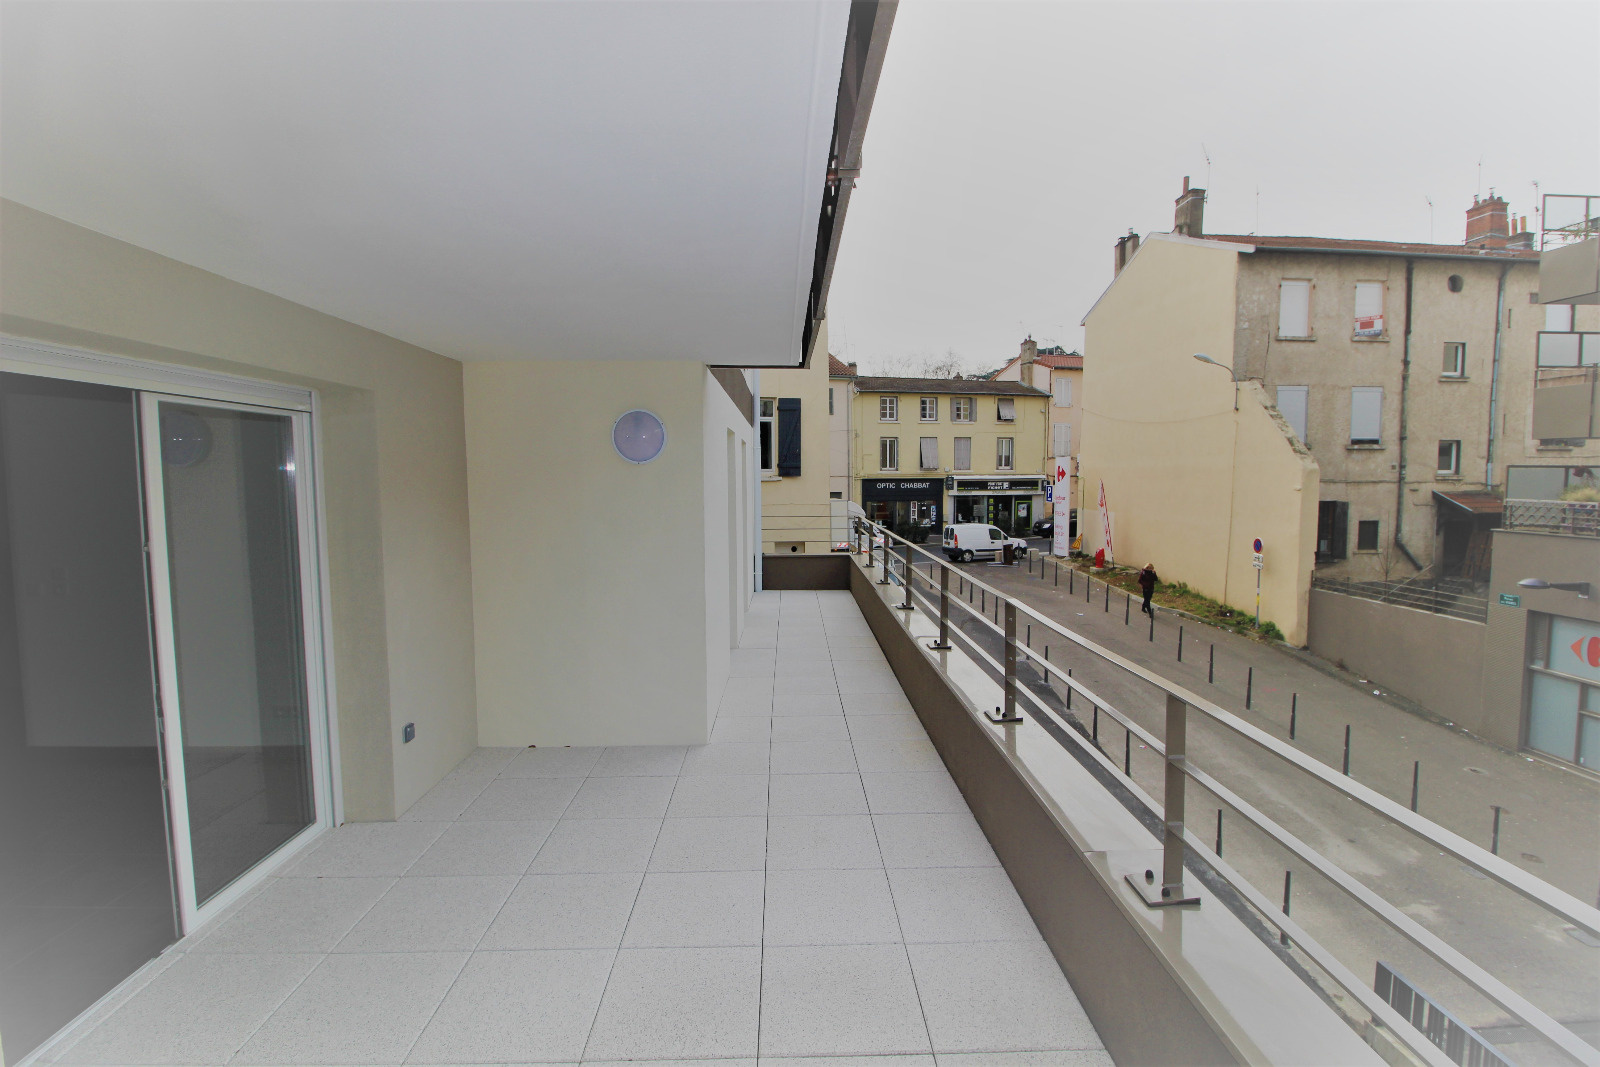 Vente appartement type 3 de 63m oullins 69600 for Piscine oullins